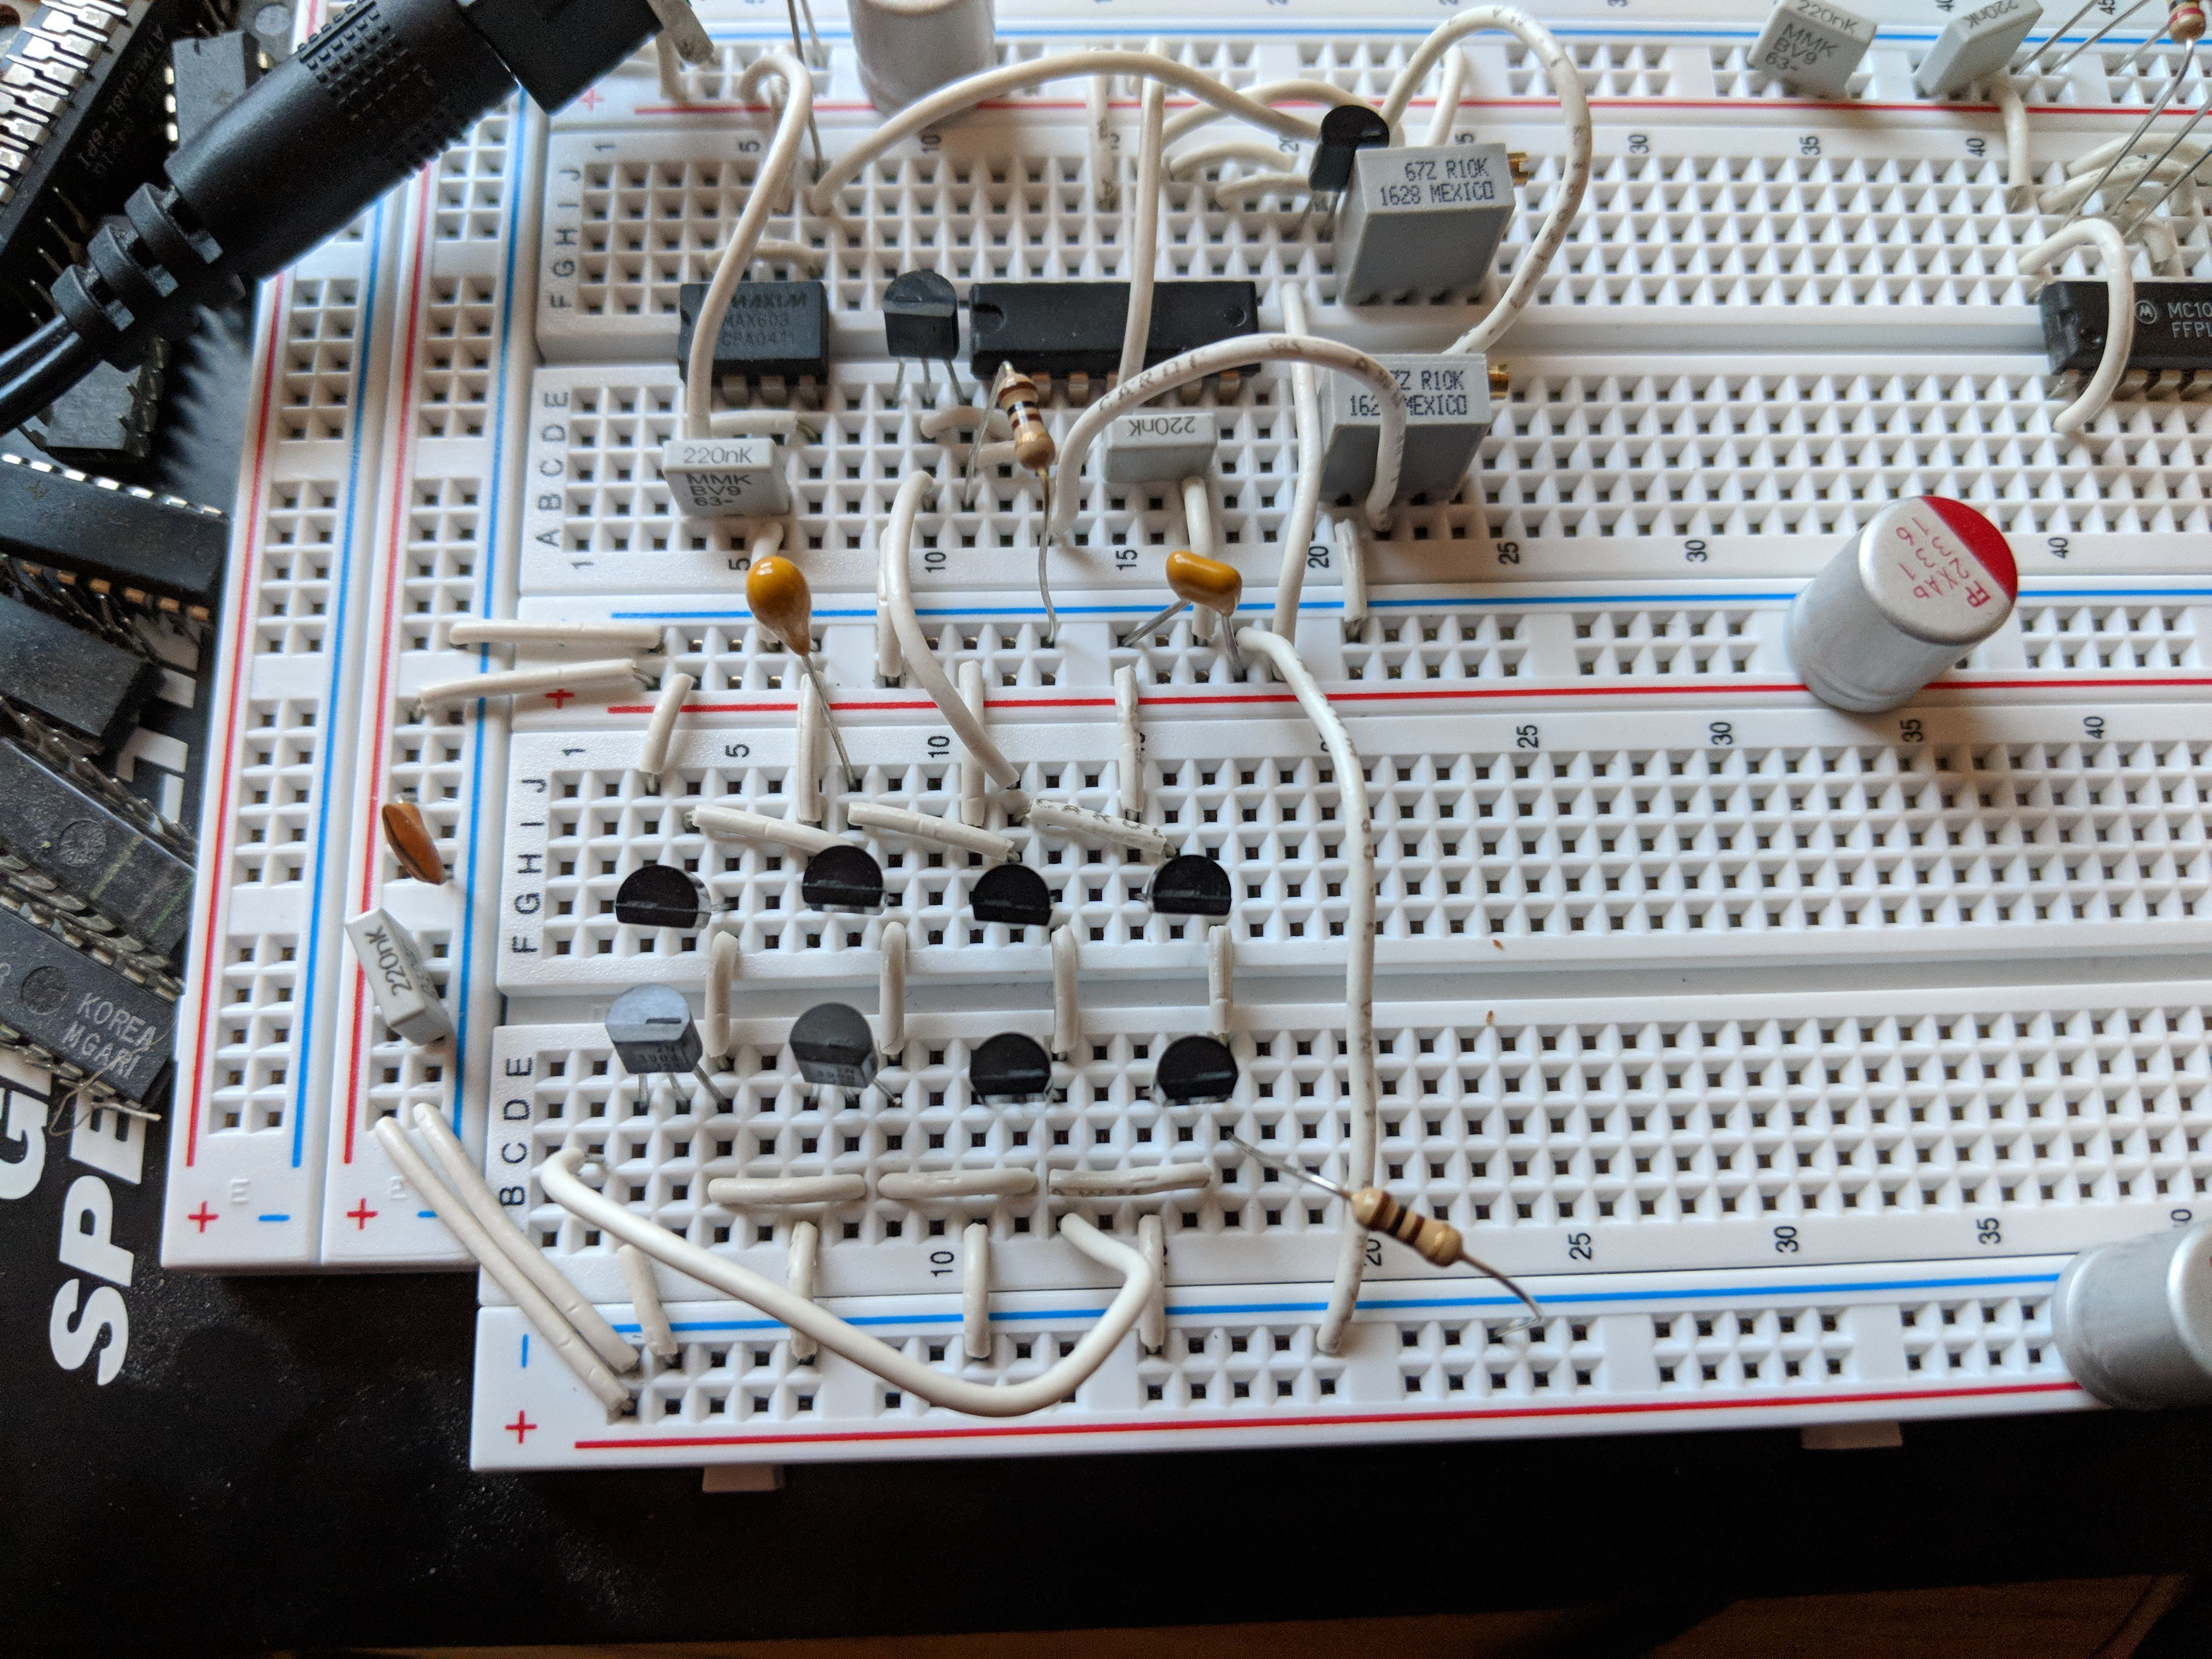 Adventures In Time Integrated Injection Logic Adding Circuitry To The Upper Left Is A 1v Power Supply Regulator And Bias Voltage Generator For Pnp Current Injectors Adjusted 26ma